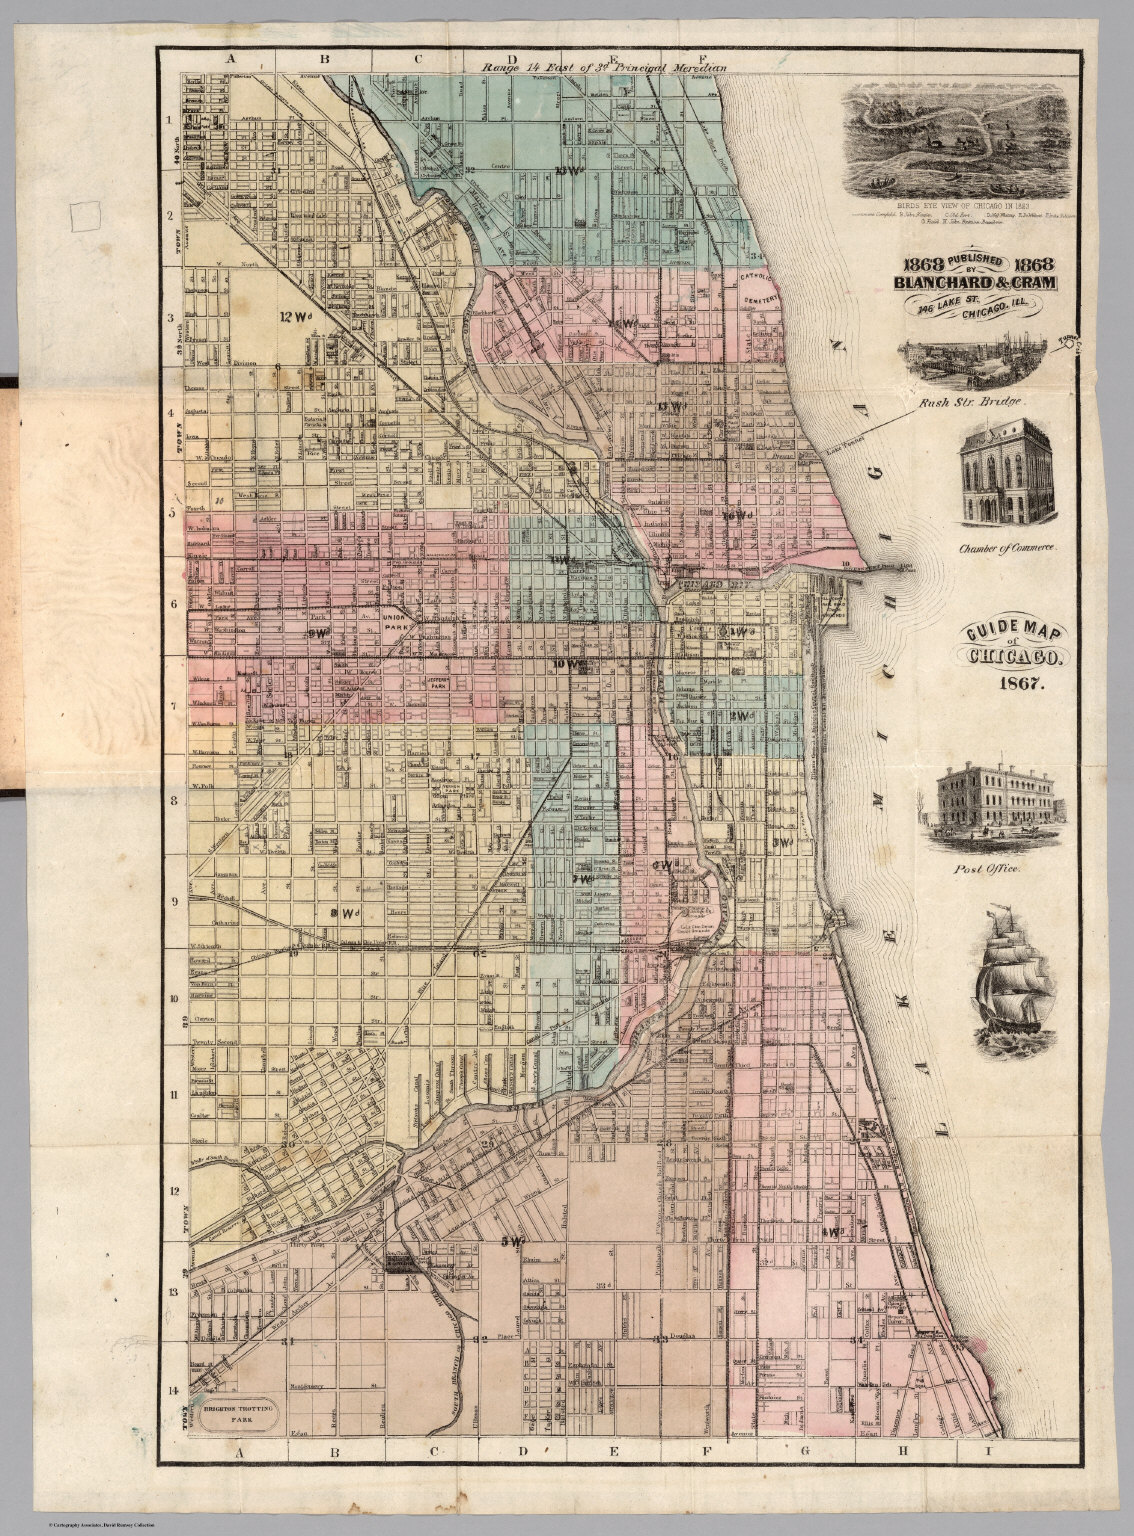 Guide Map Of Chicago  David Rumsey Historical Map Collection - Chicago map of